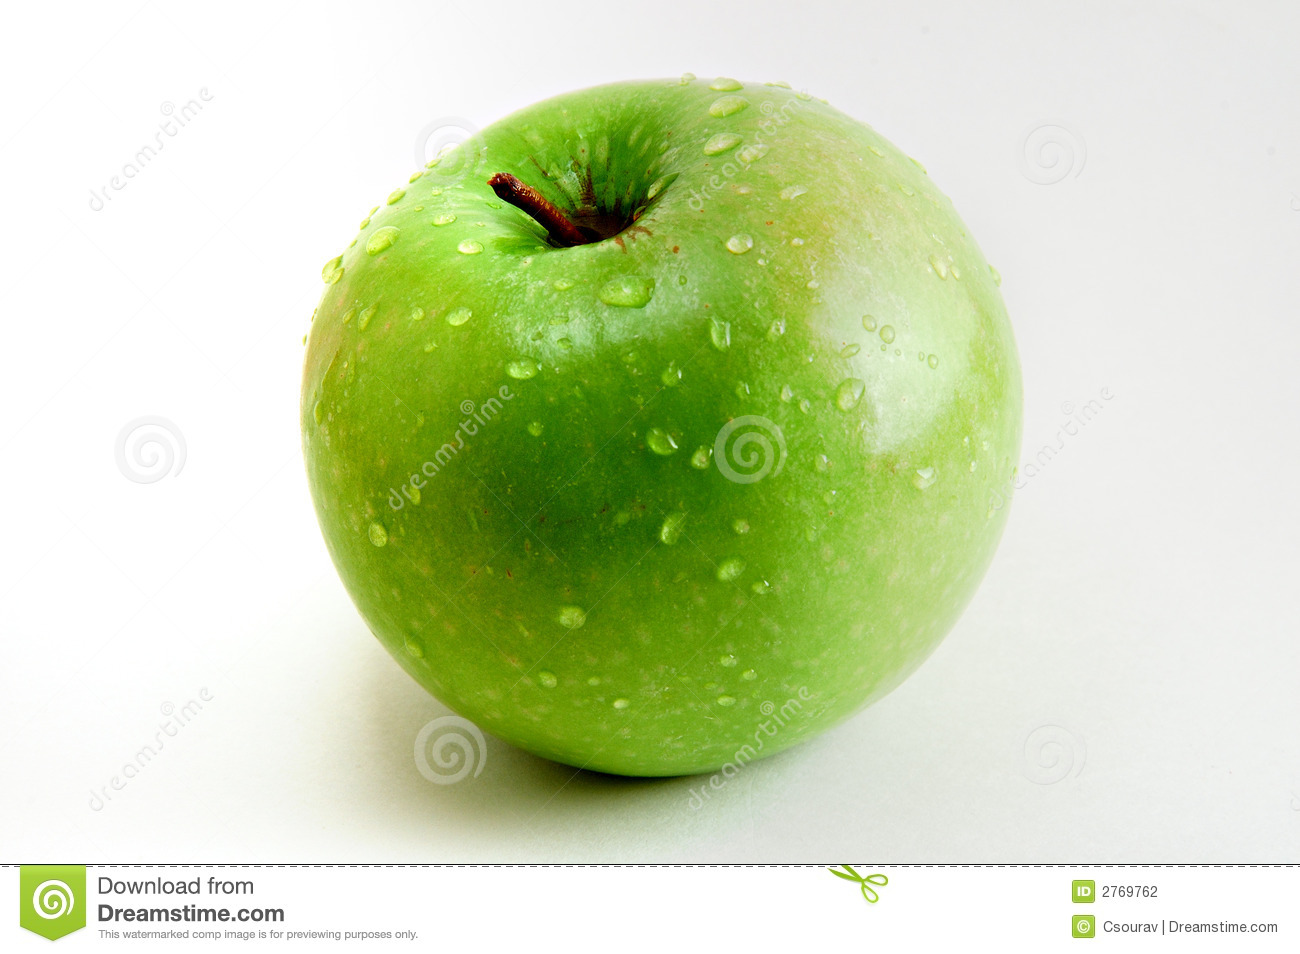 delicious green apple illustration - photo #23